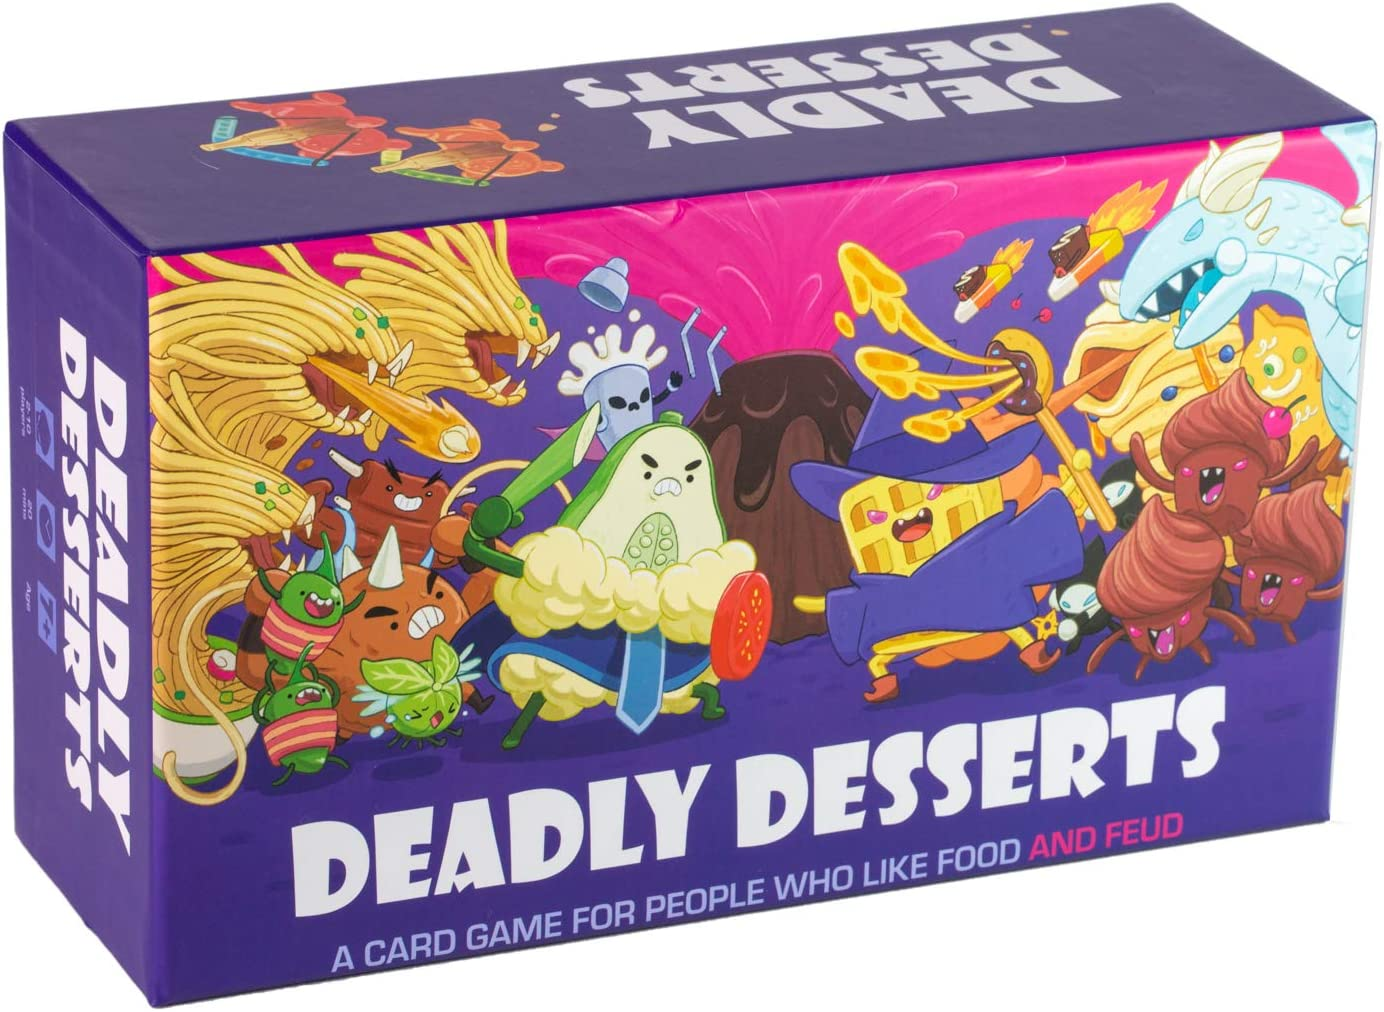 Deadly Desserts - A Family-Friendly Card Game for People Who Like Food and Feud - Board Games for Adults and Kids